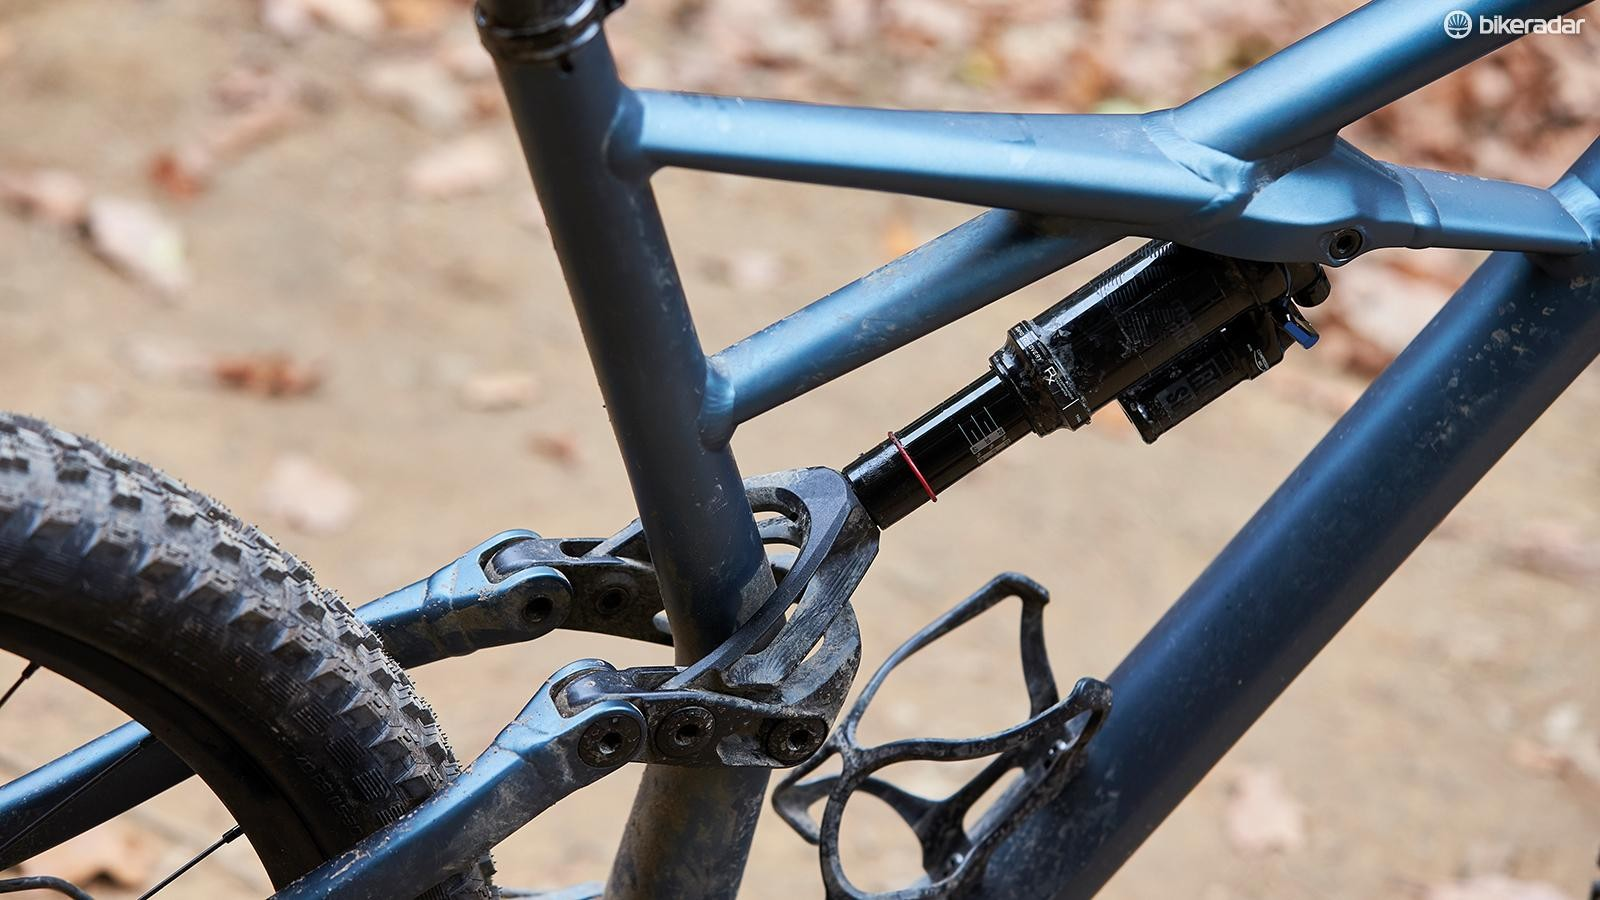 Frame geometry stays the same as on the 2018 Enduro, with 170mm of travel